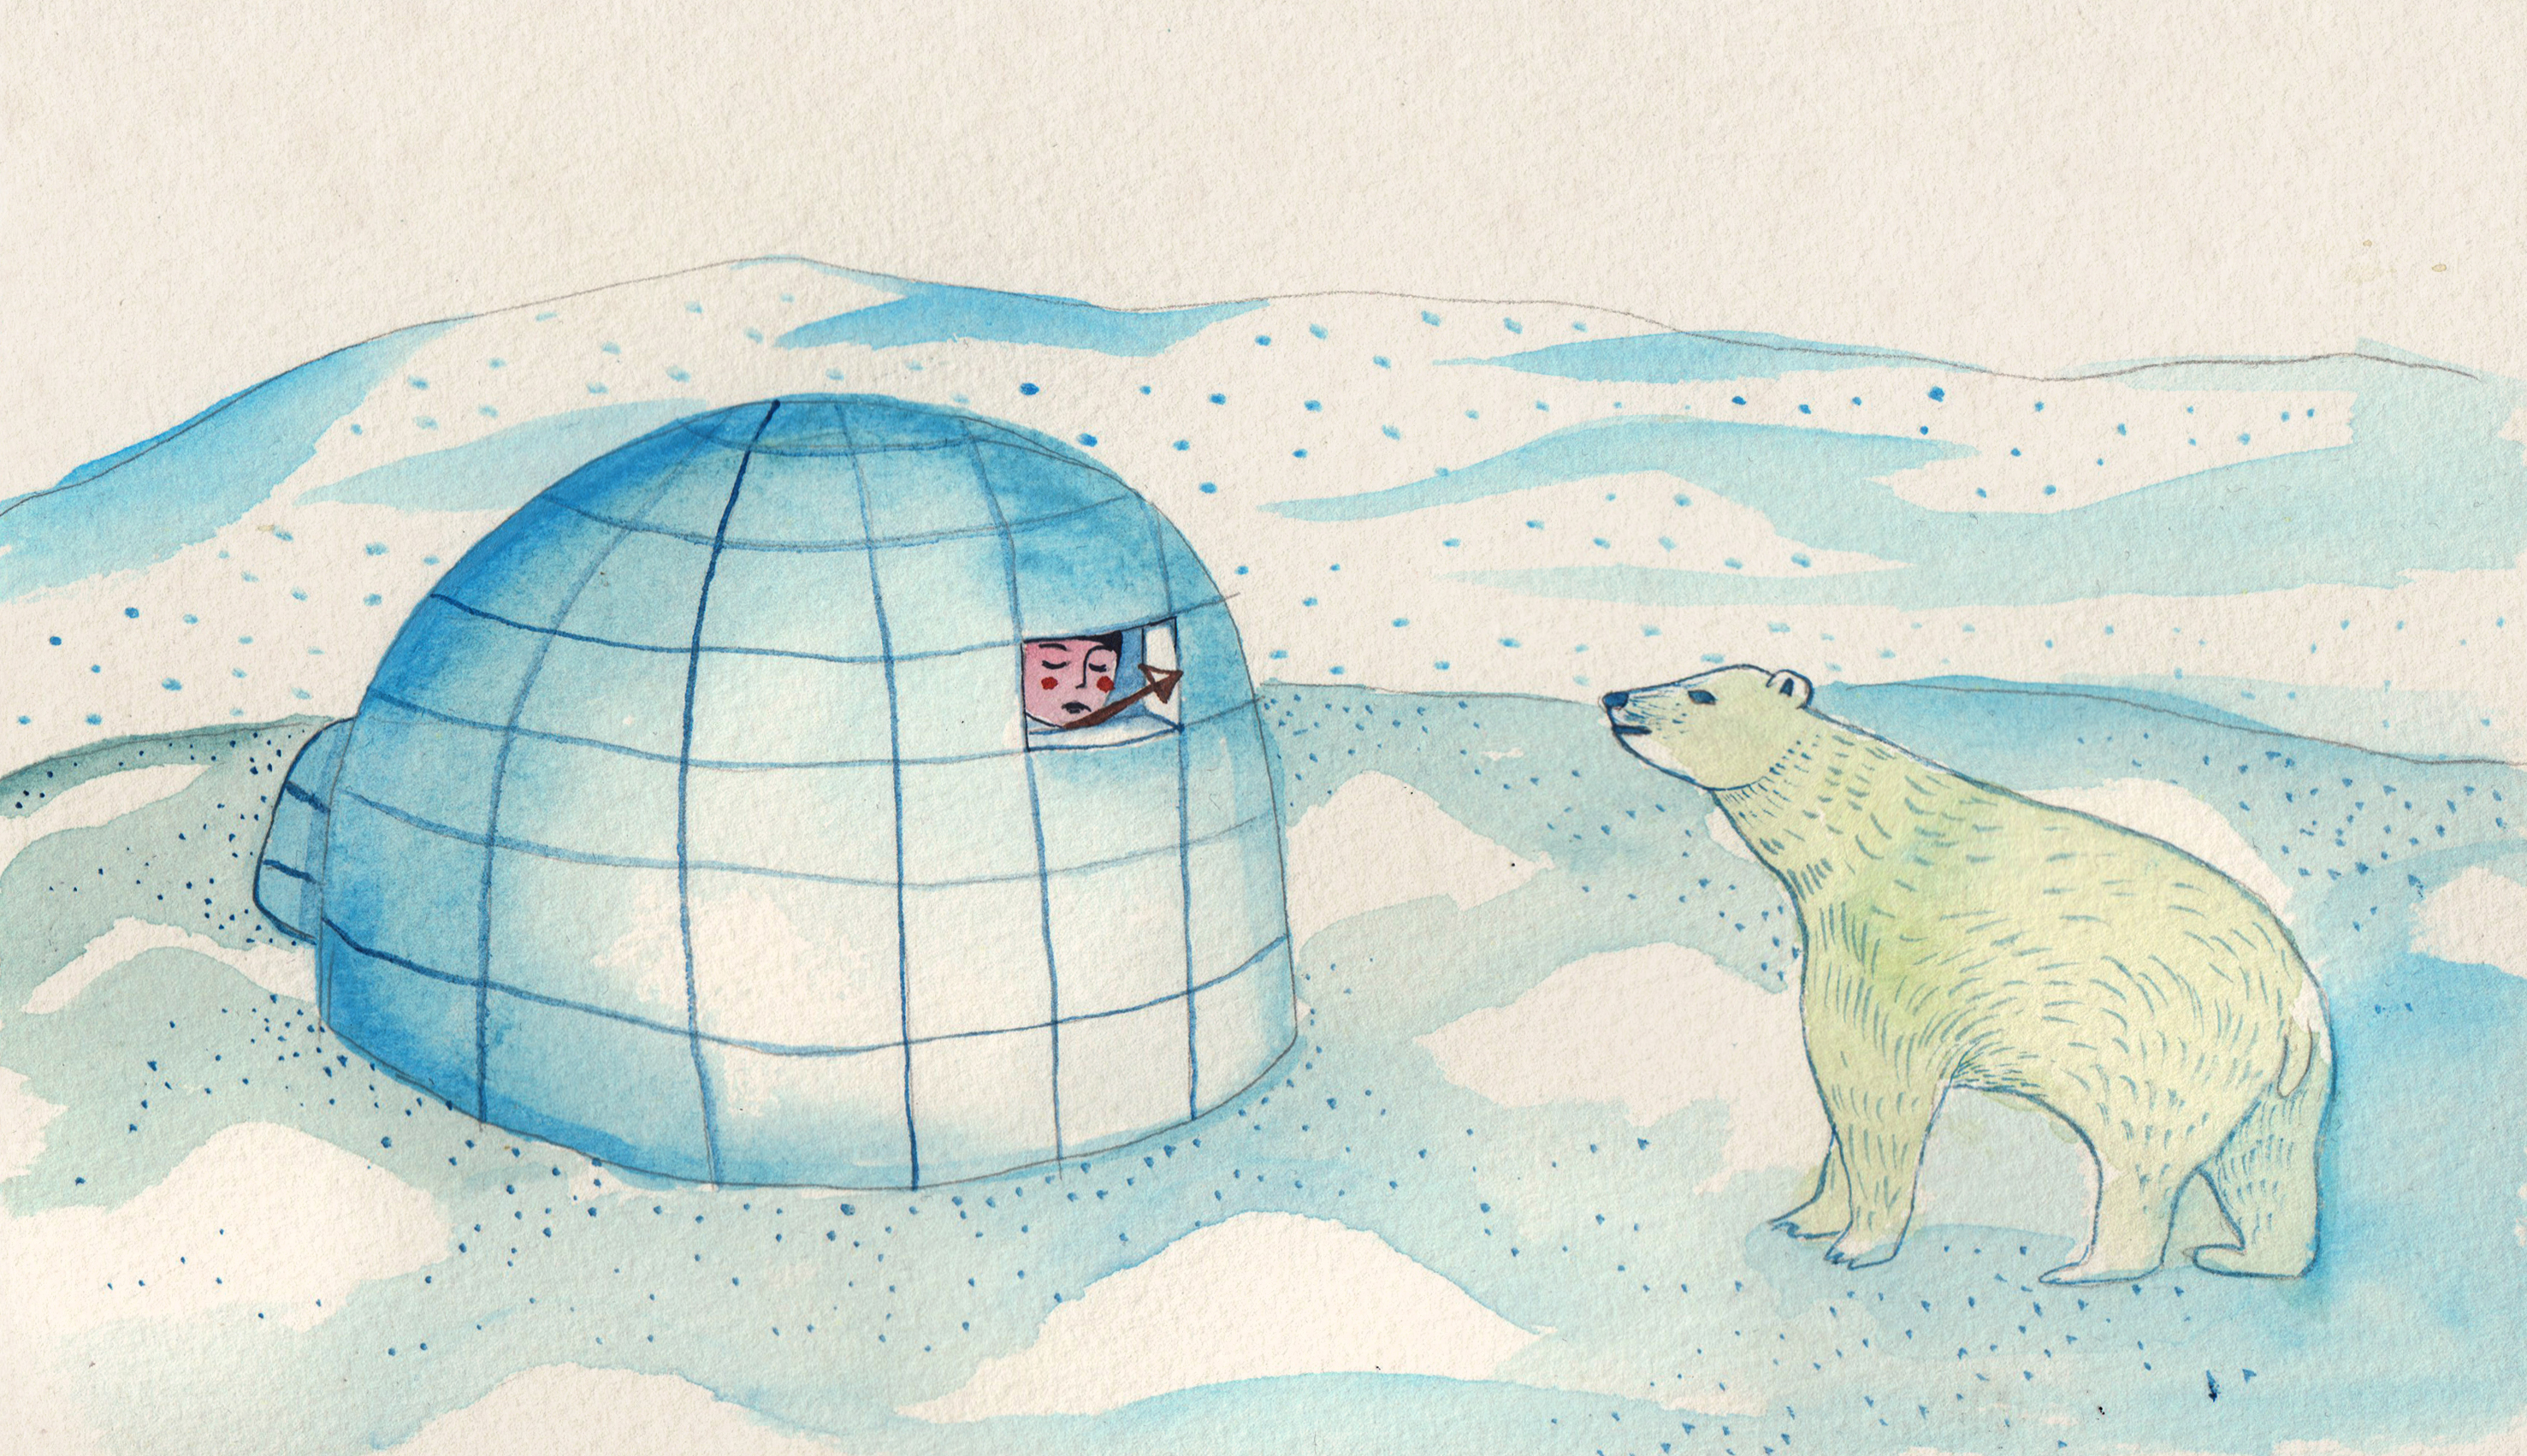 Boy looking out from an igloo at a polar bear © Aitch, from The Blind Boy and the Loon by Angela McAllister